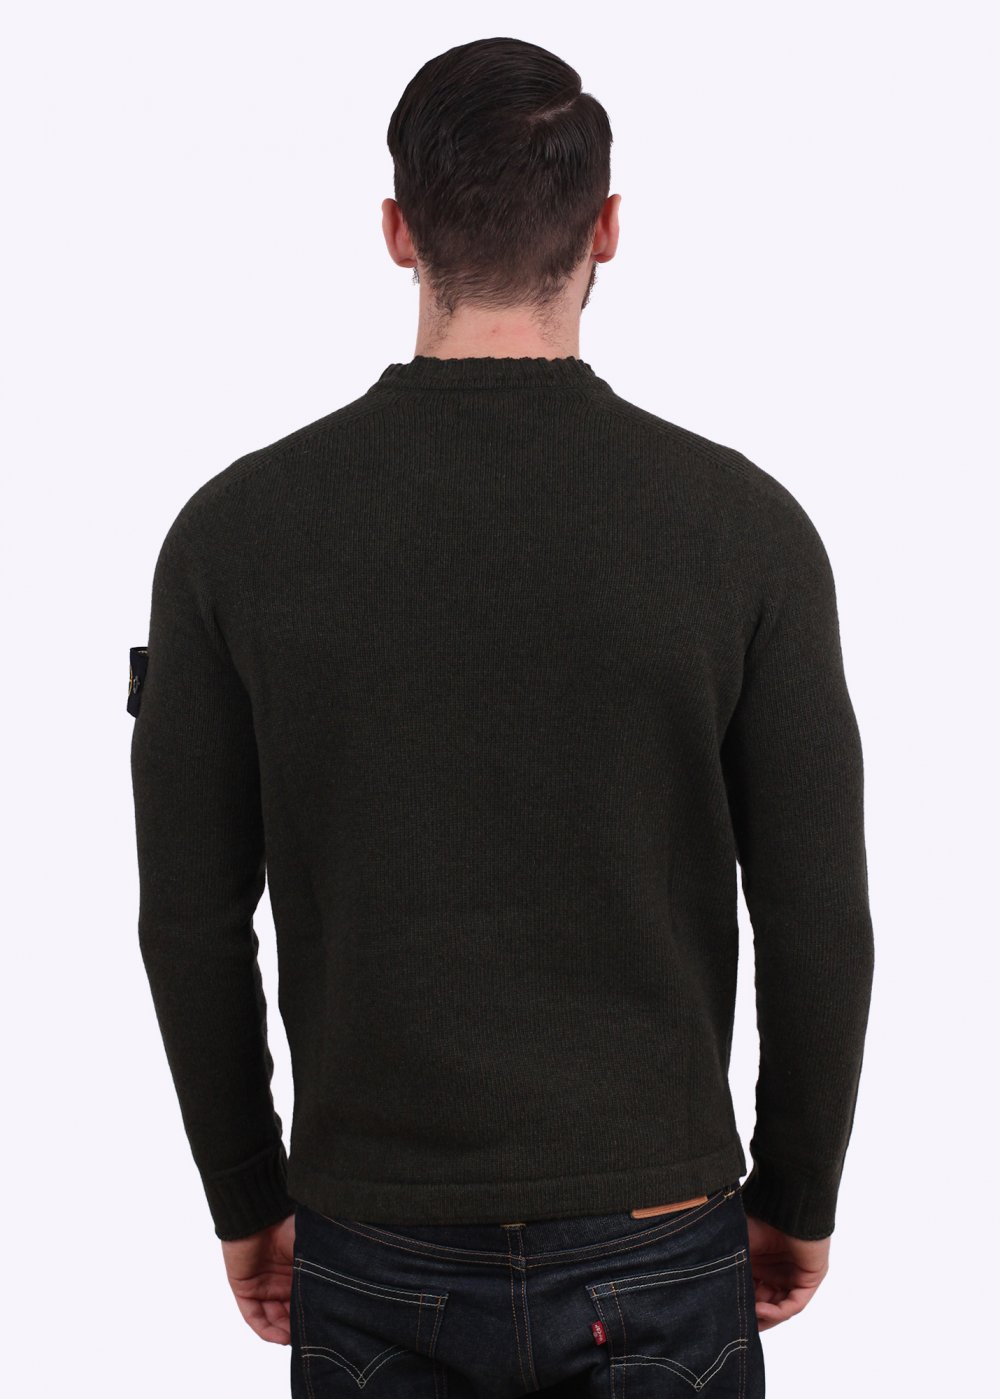 Stone Island Knit Crewneck Jumper Military Green